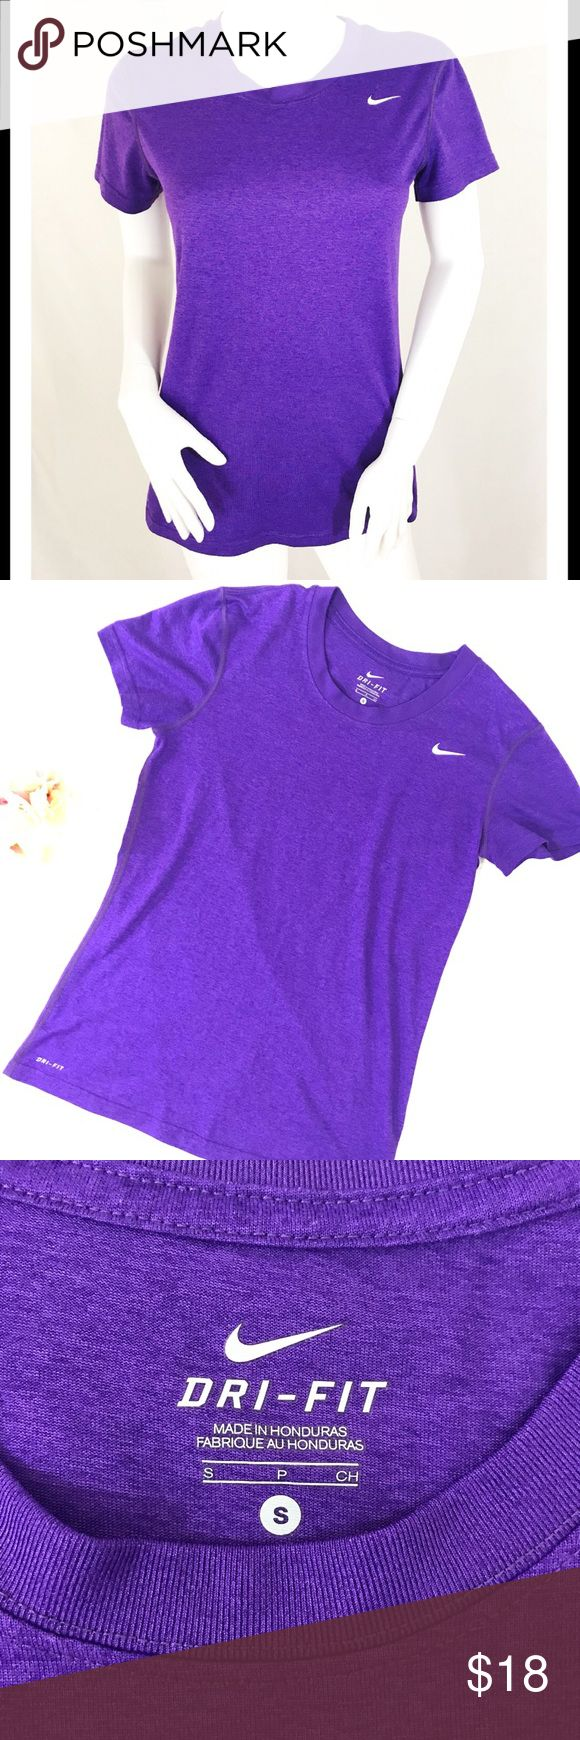 """NWOT Nike Dri-fit Tee NWOT Nike Dri-fit Tee in purple. Great basic piece to add to every fit-wardrobe. Comfy with breathable material that helps to keep you dry.  •Measurements•  Bust: 34""""  Length: 25"""" Nike Tops Tees - Short Sleeve"""